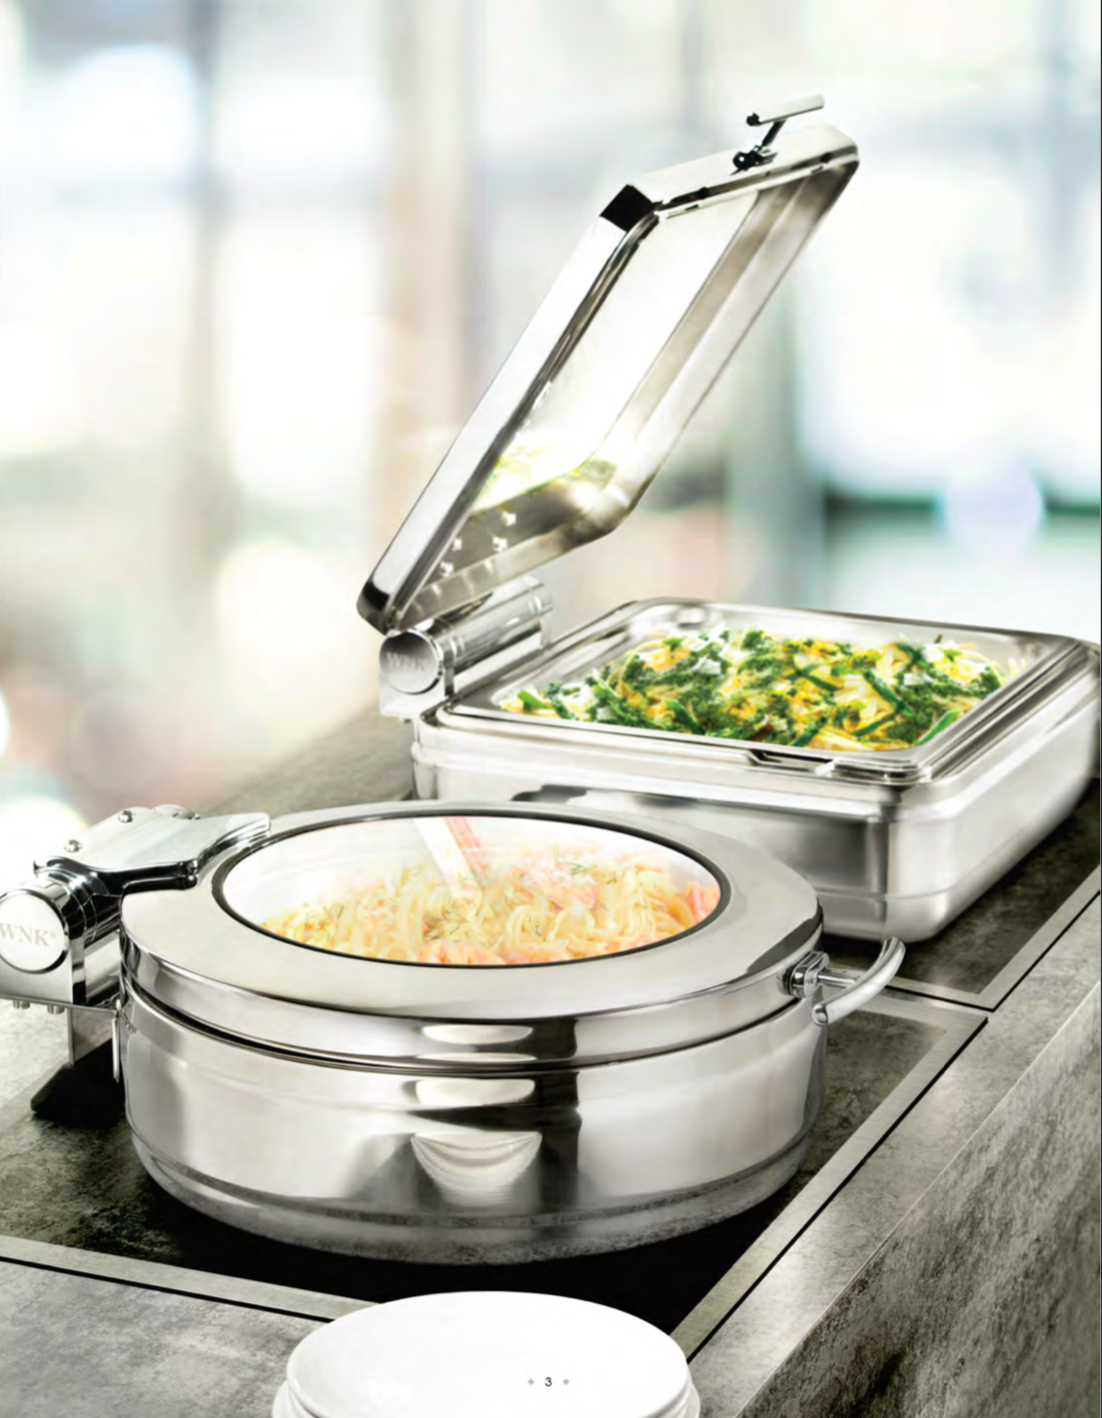 supplier of hospitality and catering ware